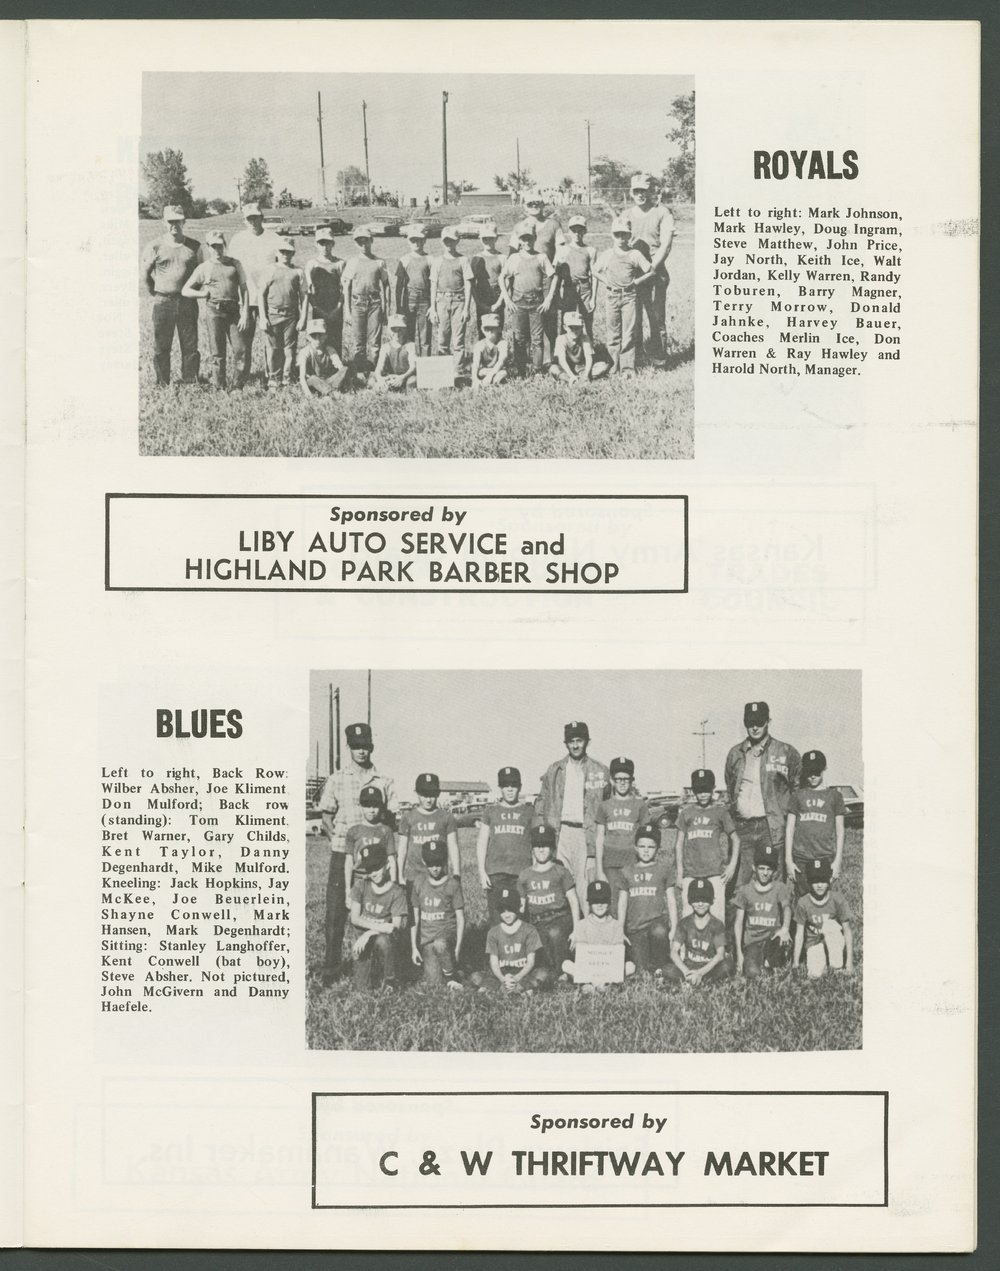 1969 SCABA baseball yearbook, Topeka, Kansas - 13